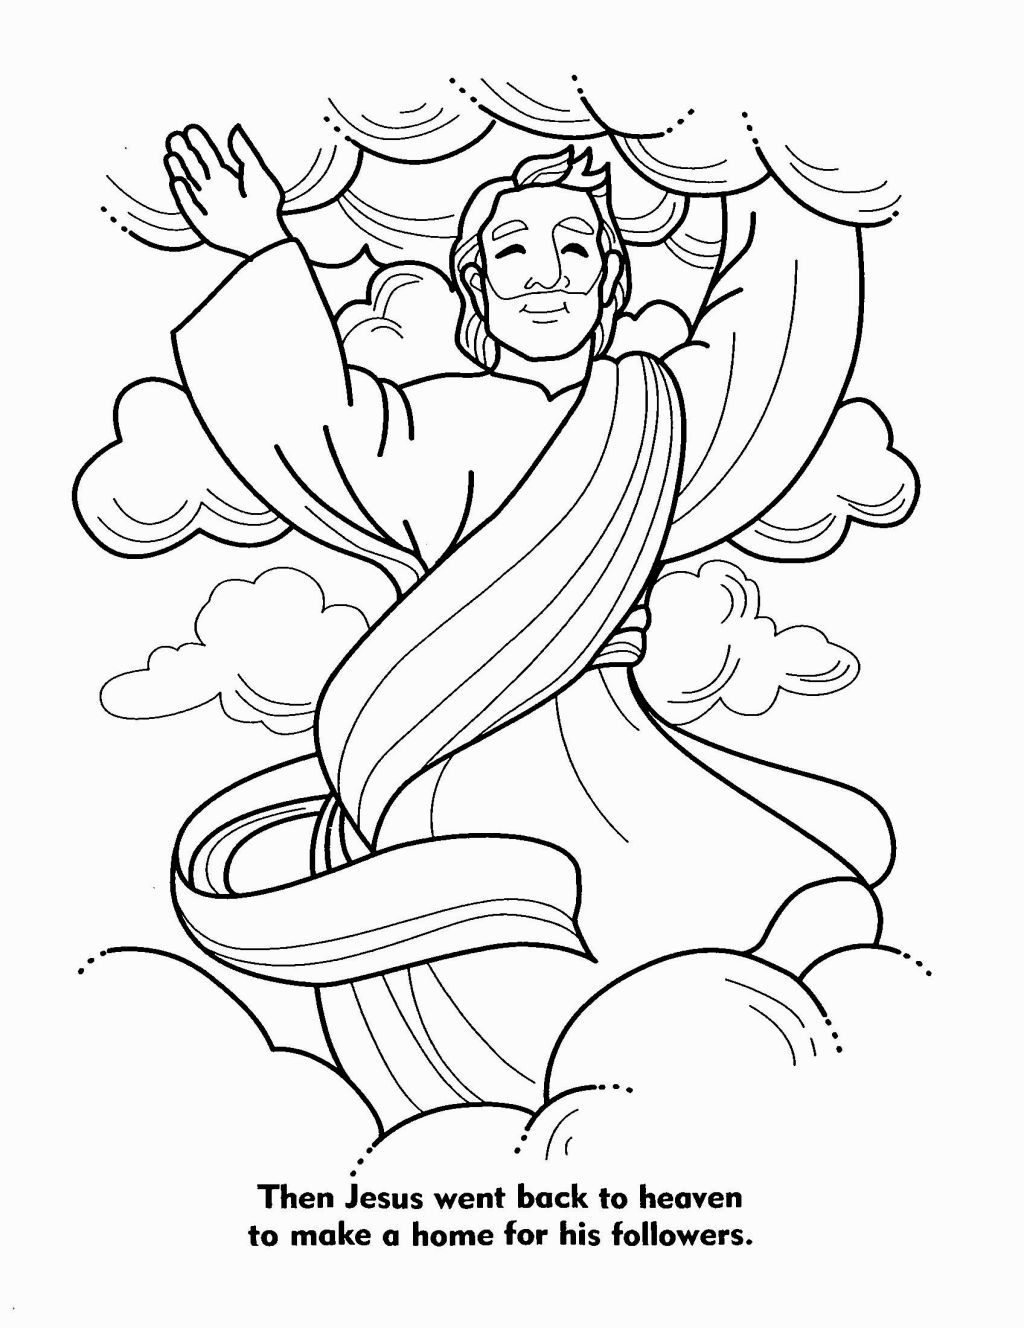 Coloring Page Jesus With Images Jesus Coloring Pages Bible